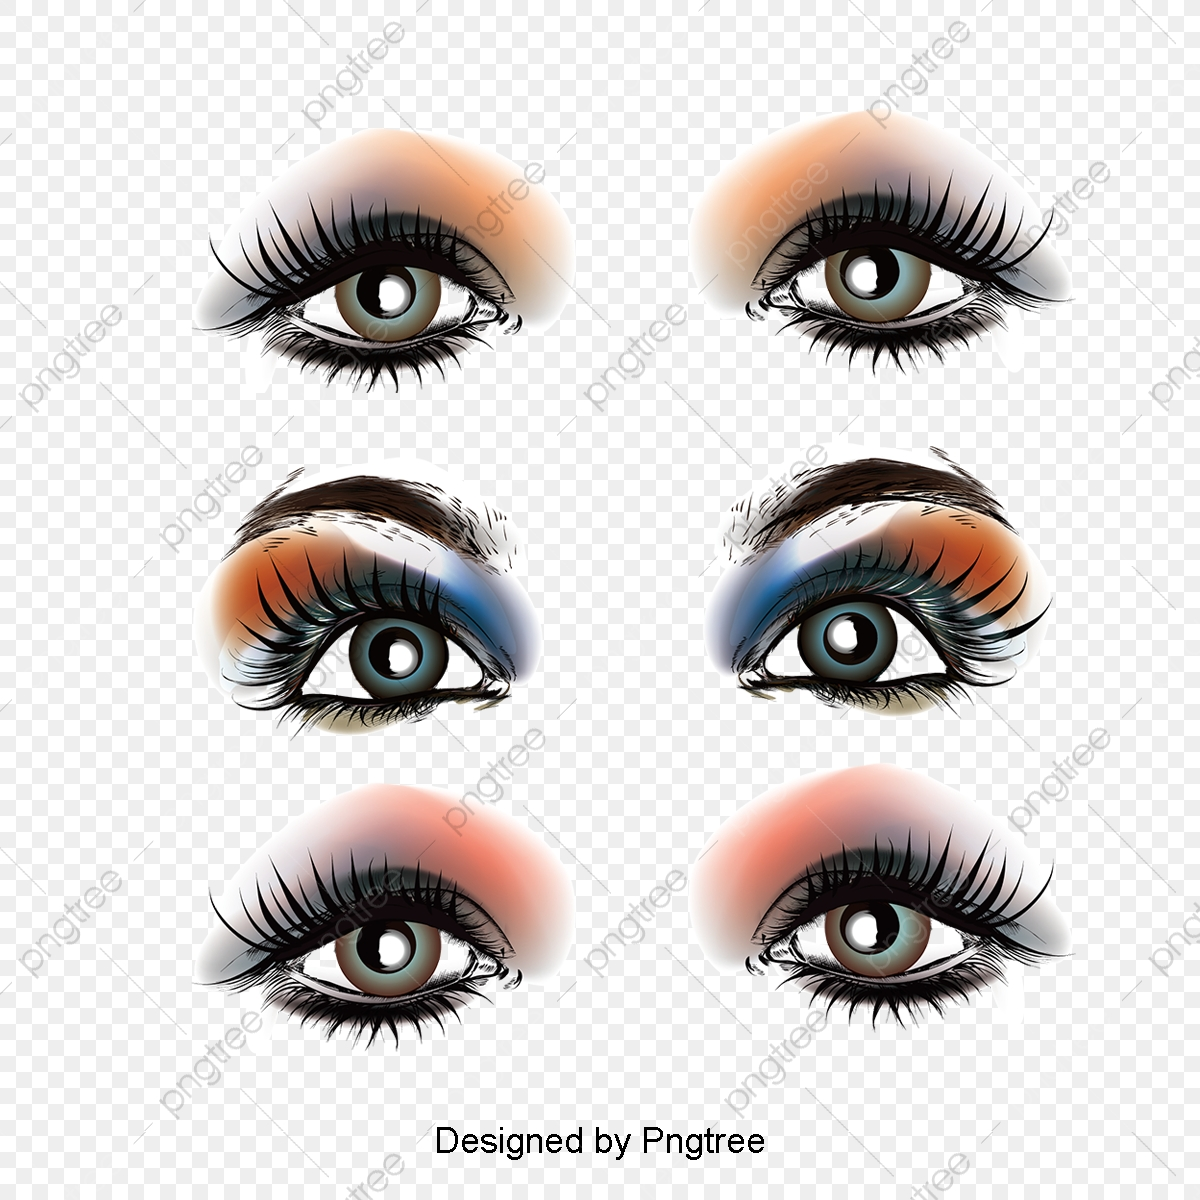 hight resolution of  eye clipart brown eye copyright complaint